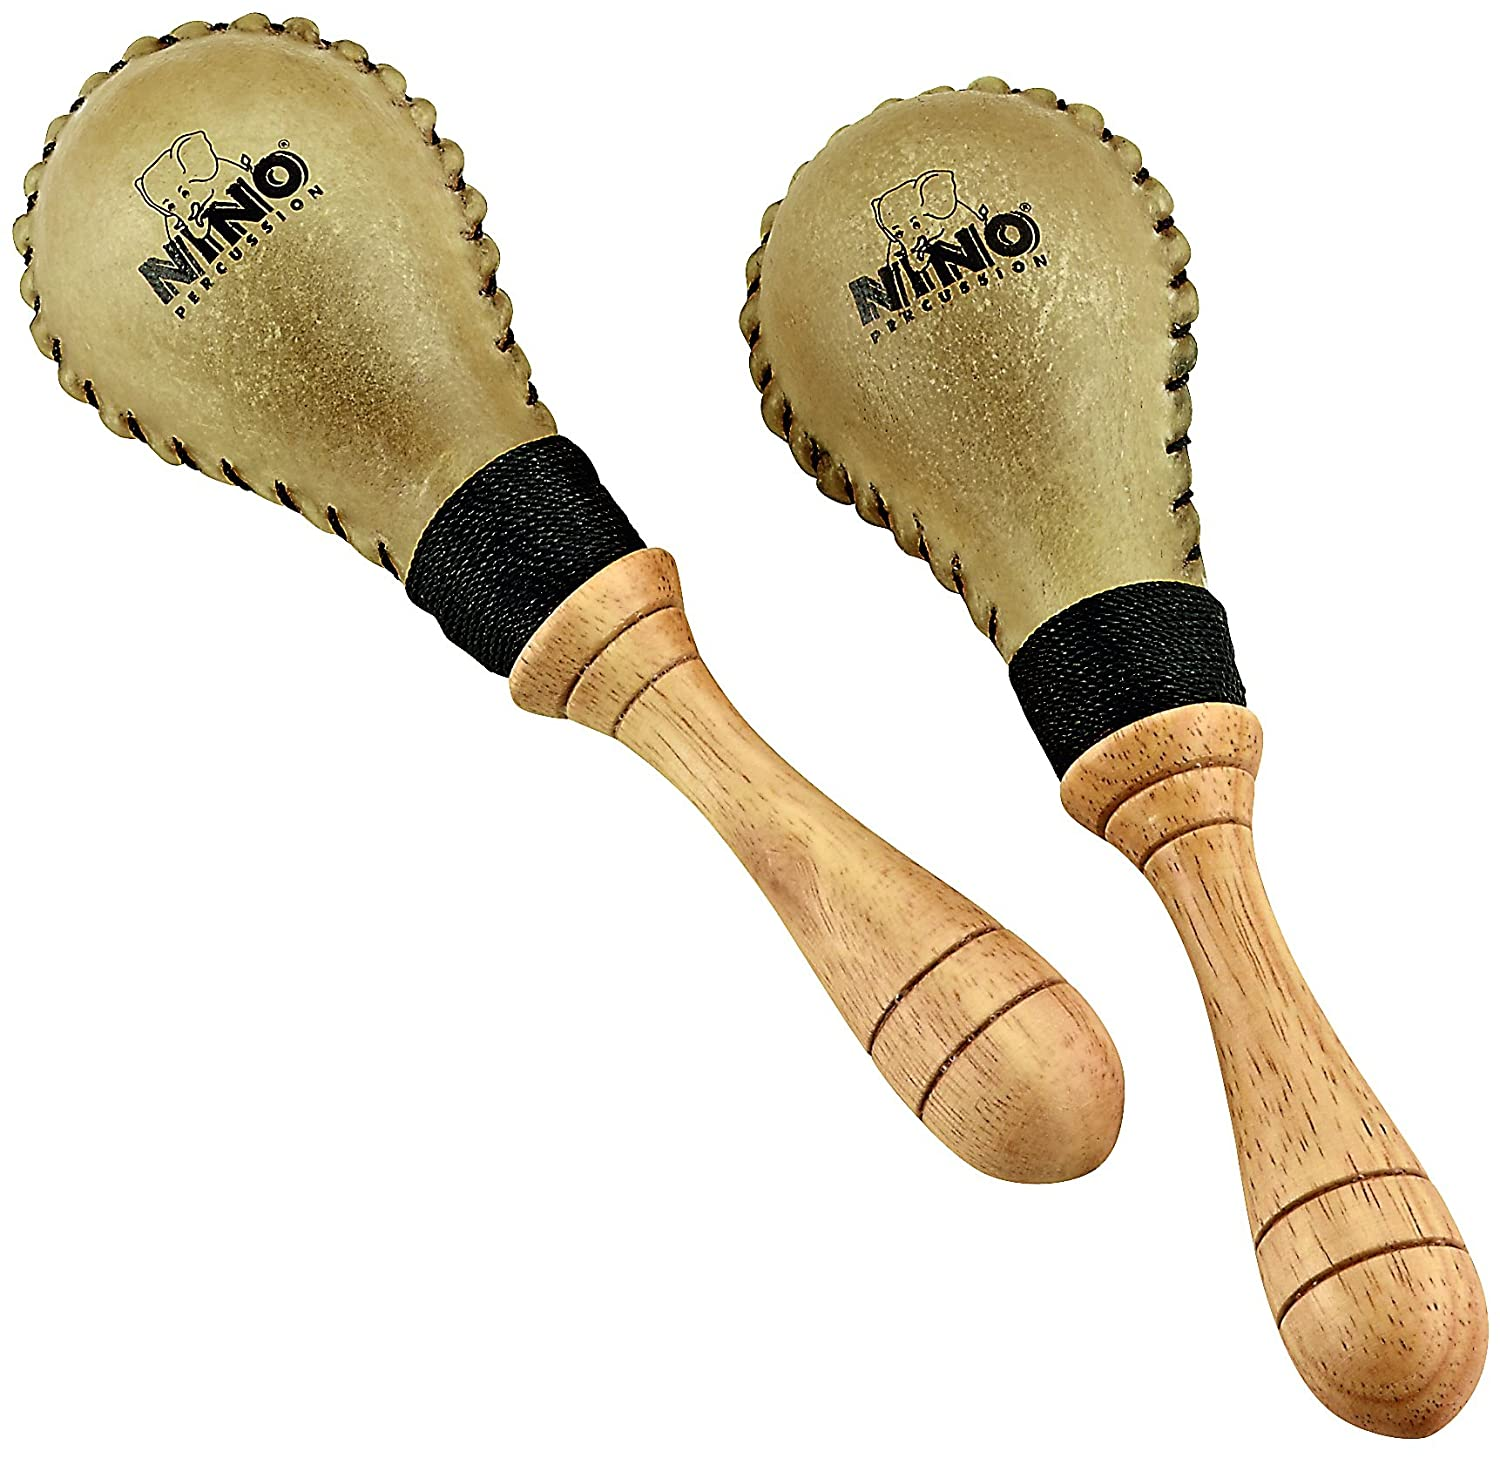 Nino Percussion Nino10 Natural Rawhide Maracas, Small